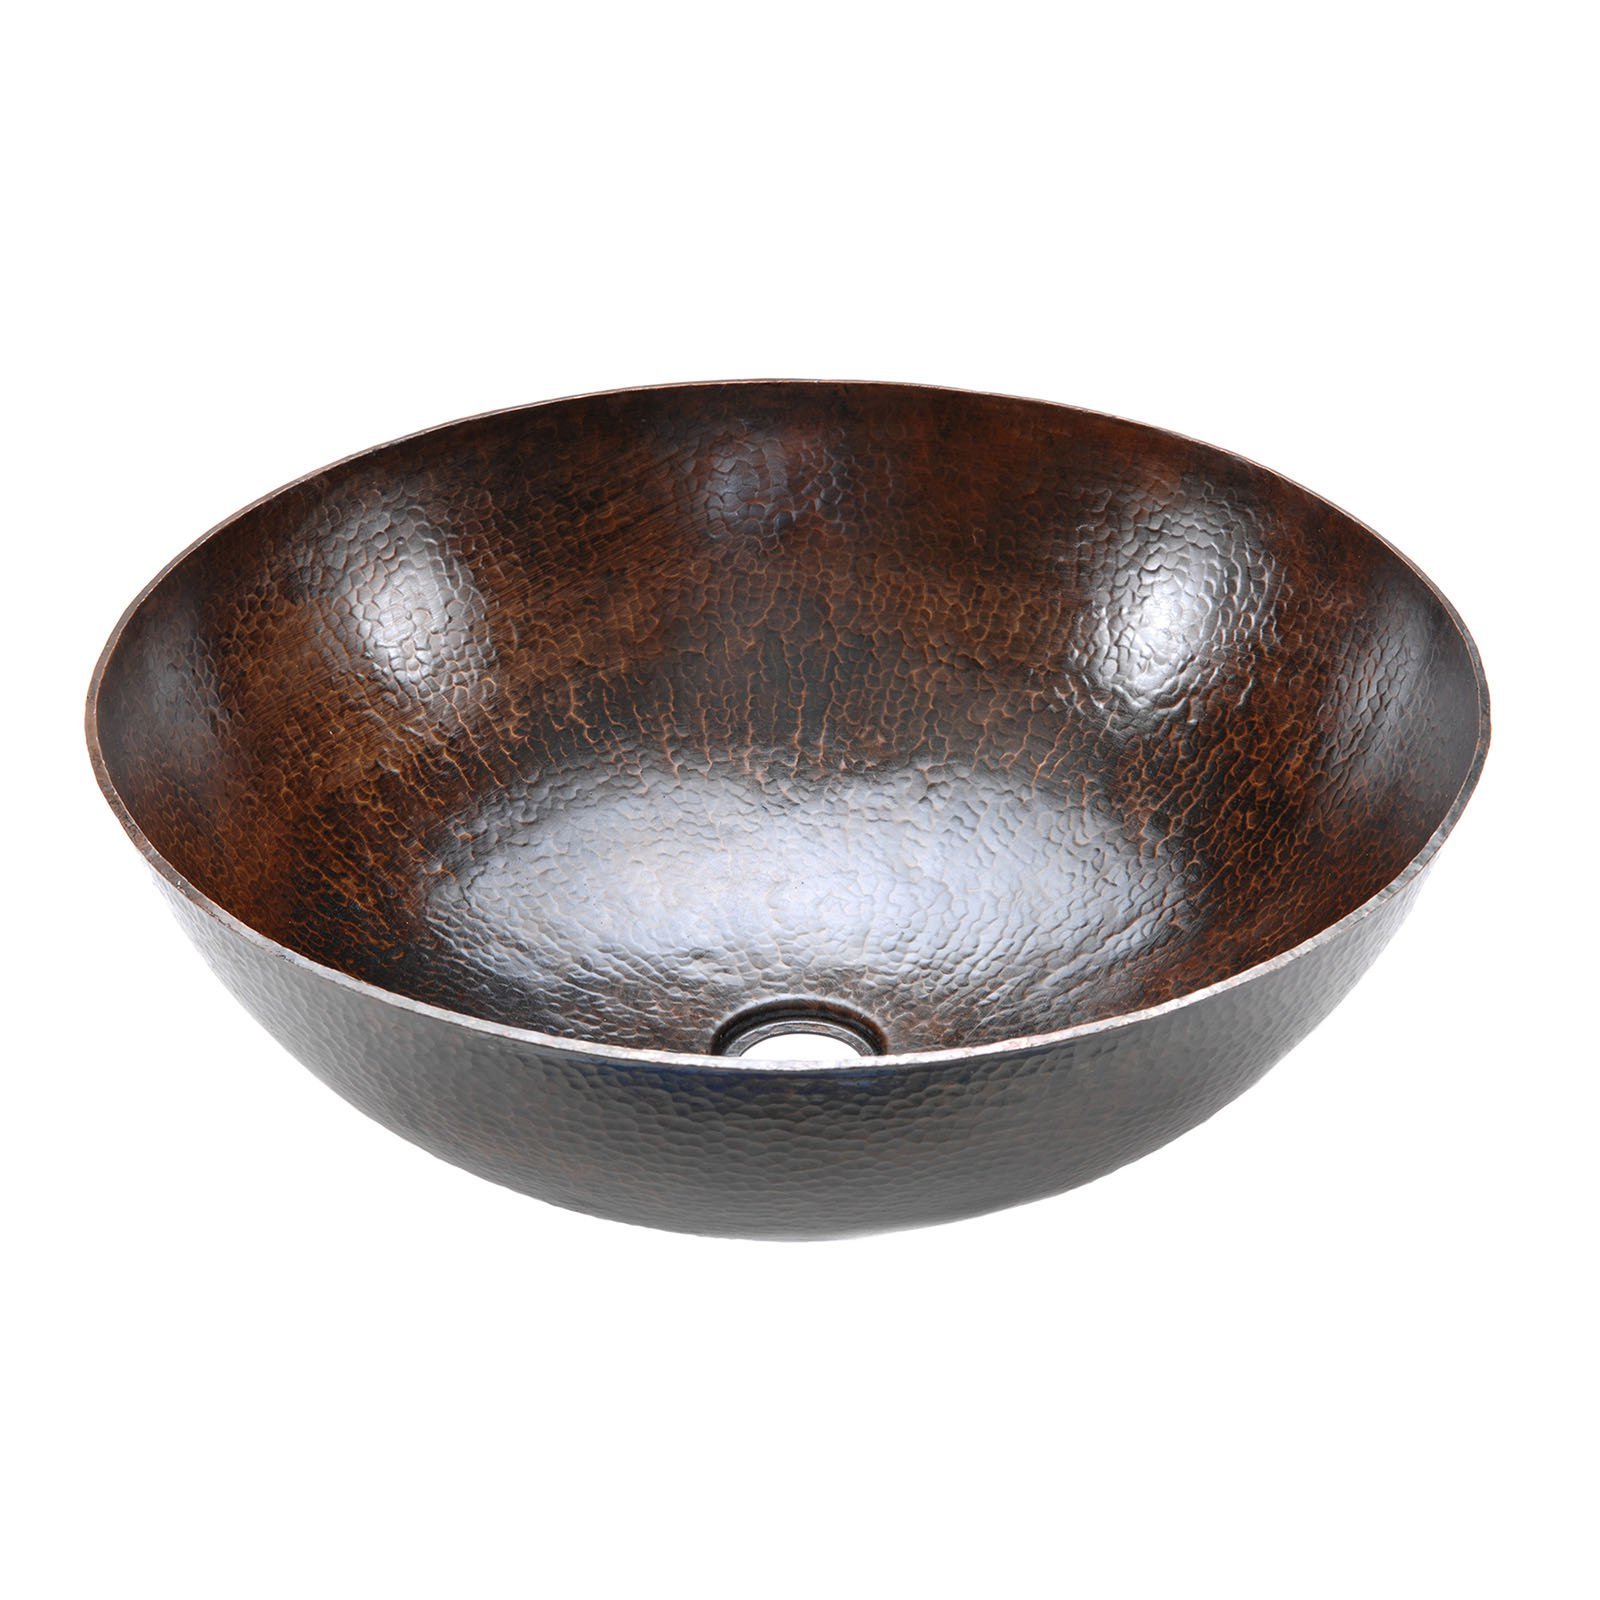 Premier Copper Products VRBDB Round Vessel Hammered Copper Sink